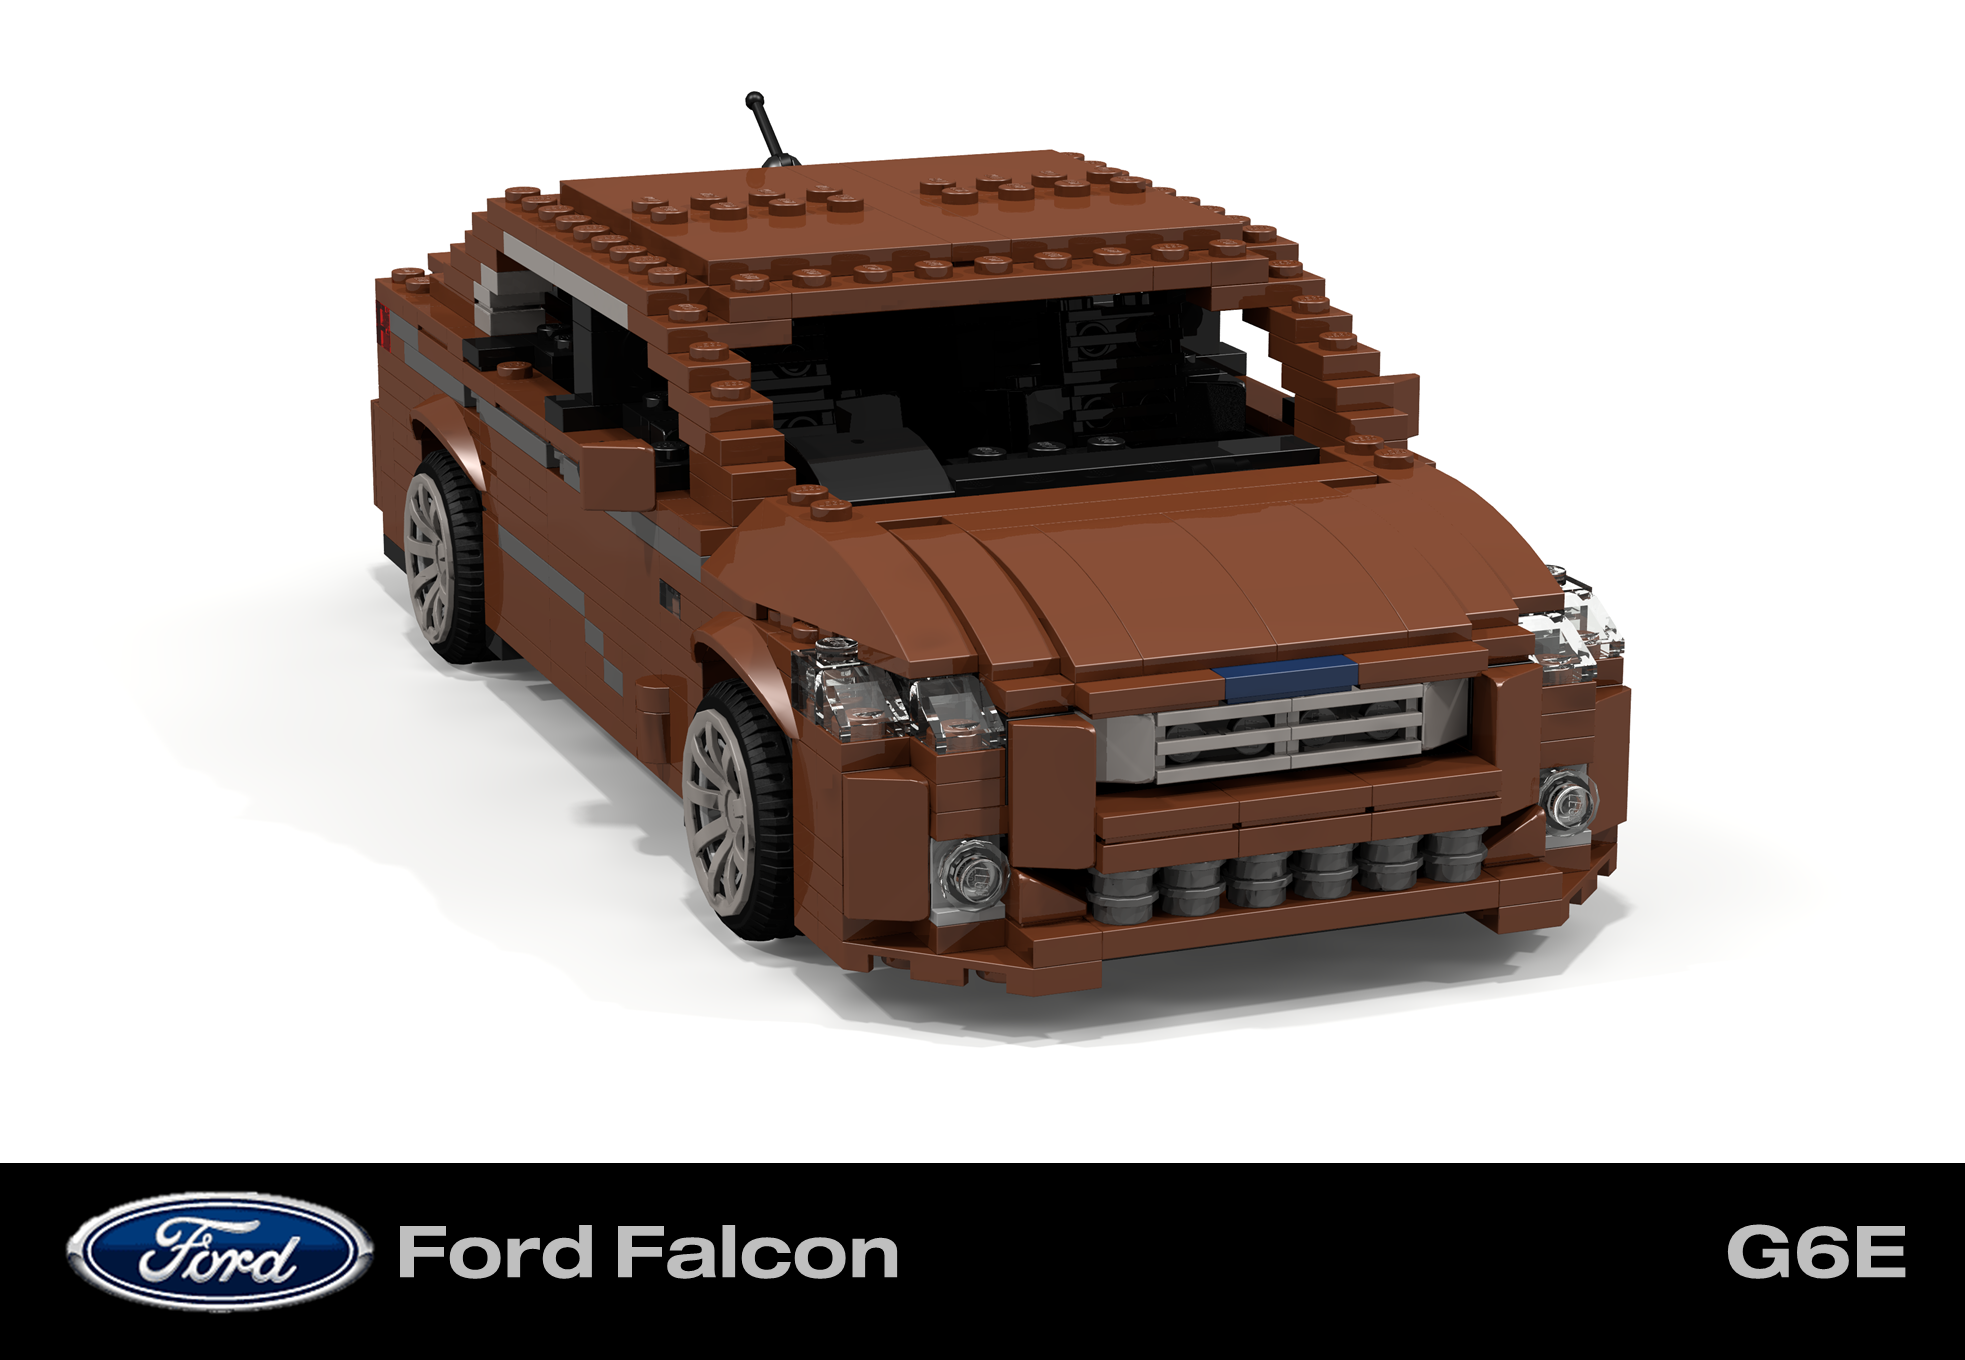 2014_ford_falcon_fgx_g6e.png